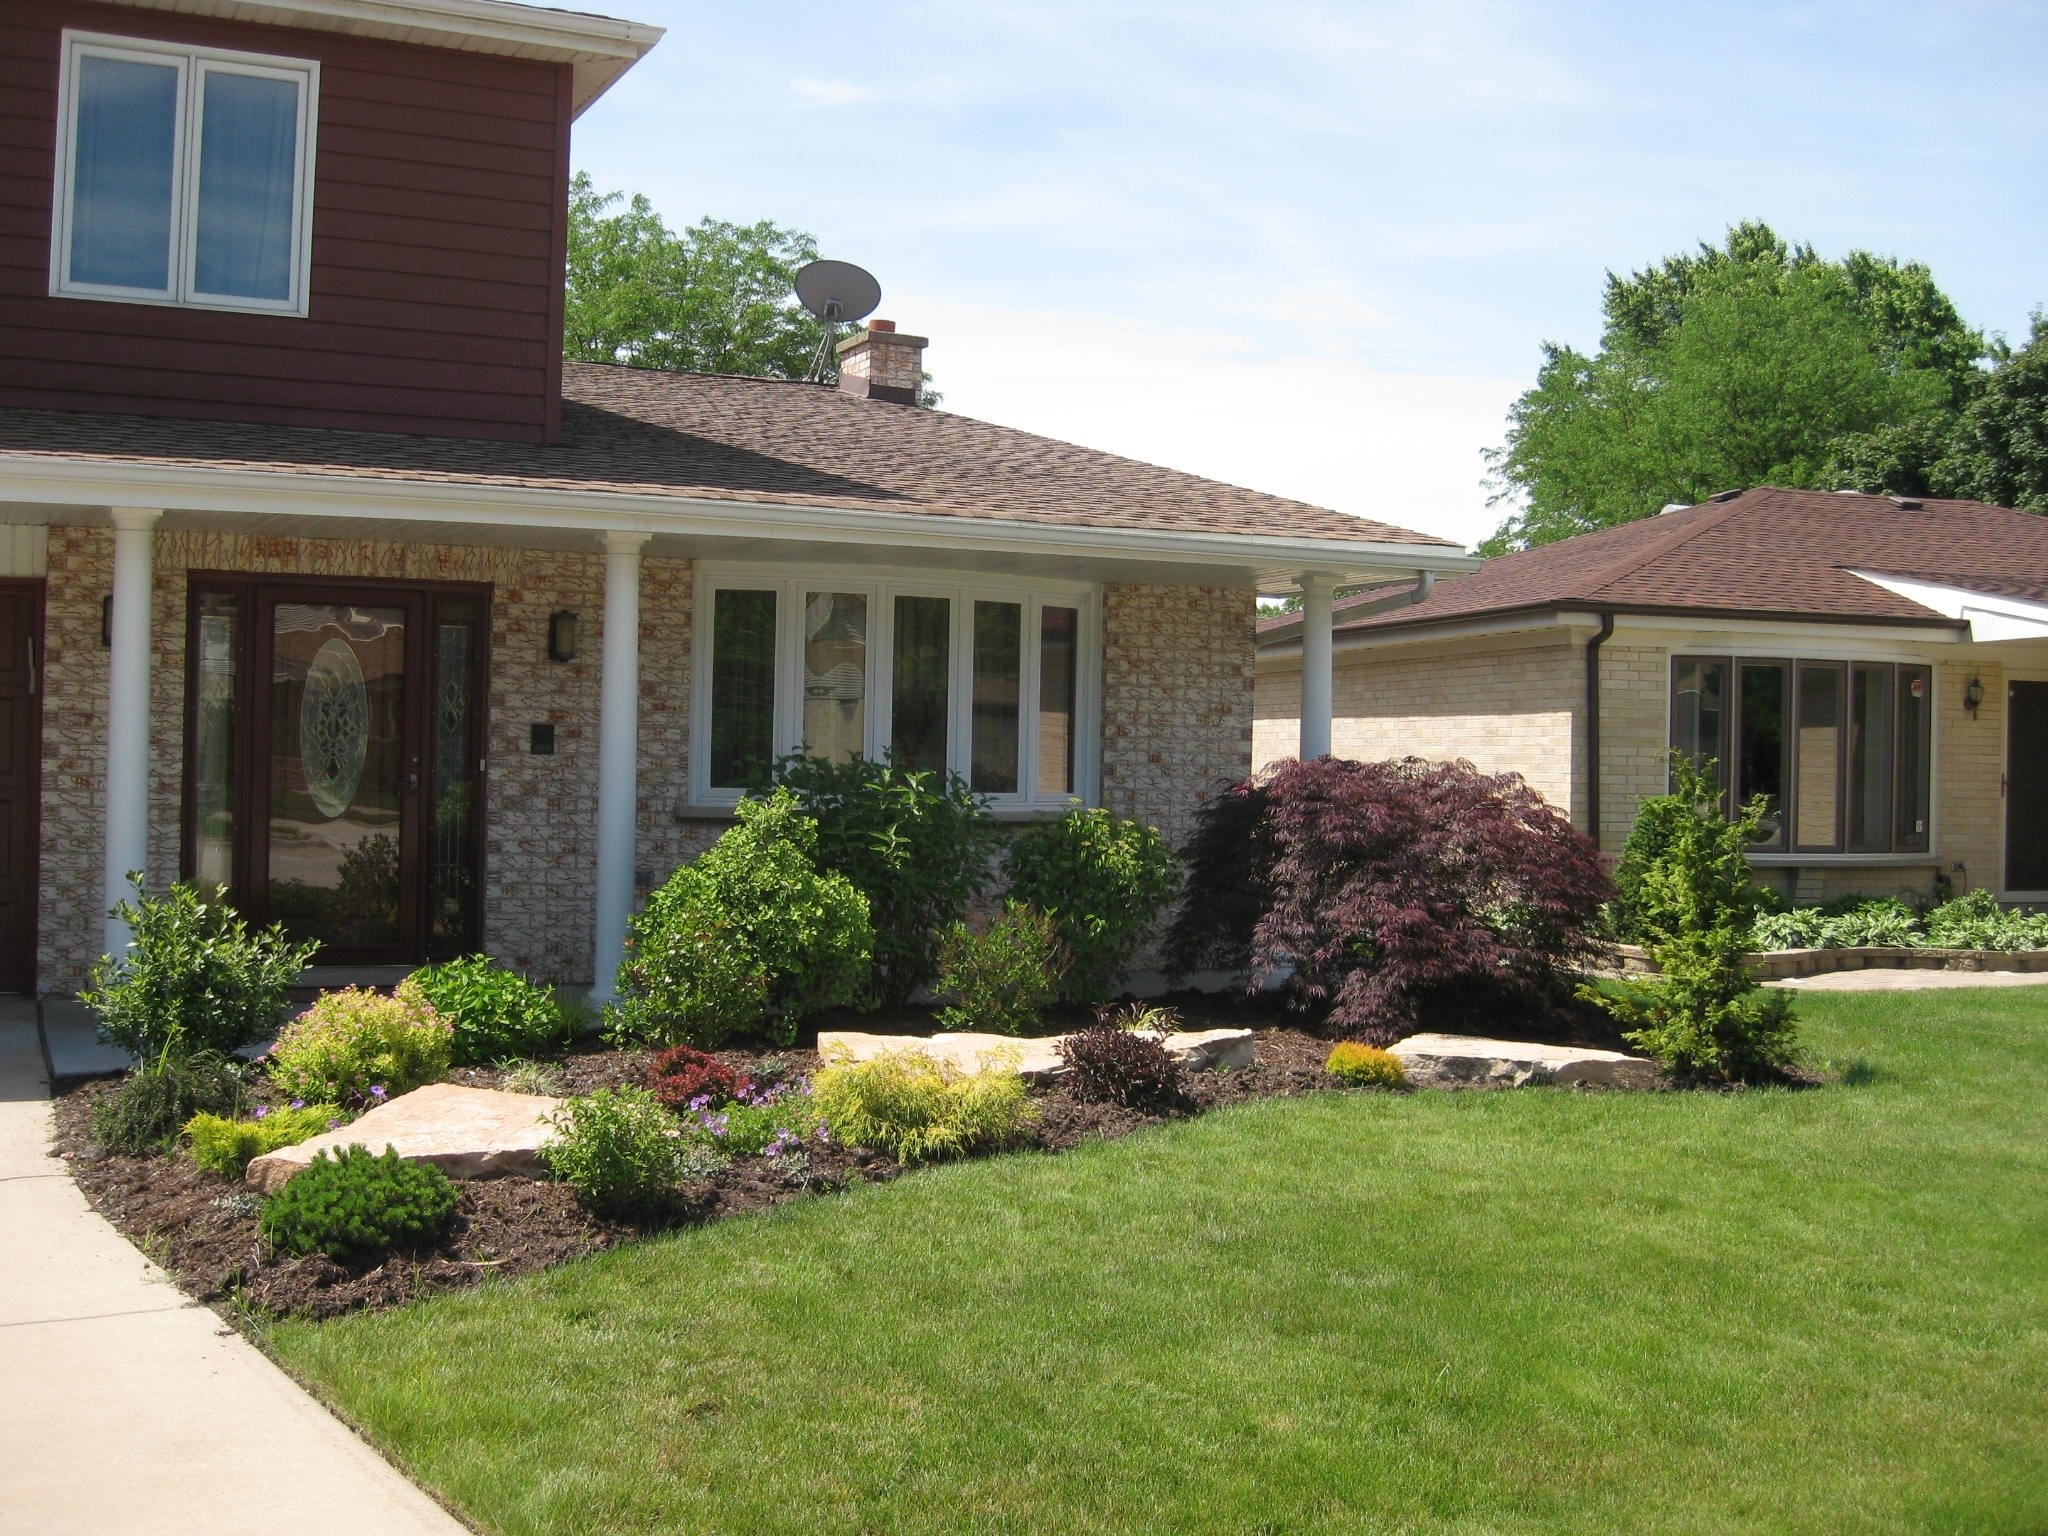 10 Great Landscaping Ideas For Front Of House front yard imposing landscape designs for front of house picture